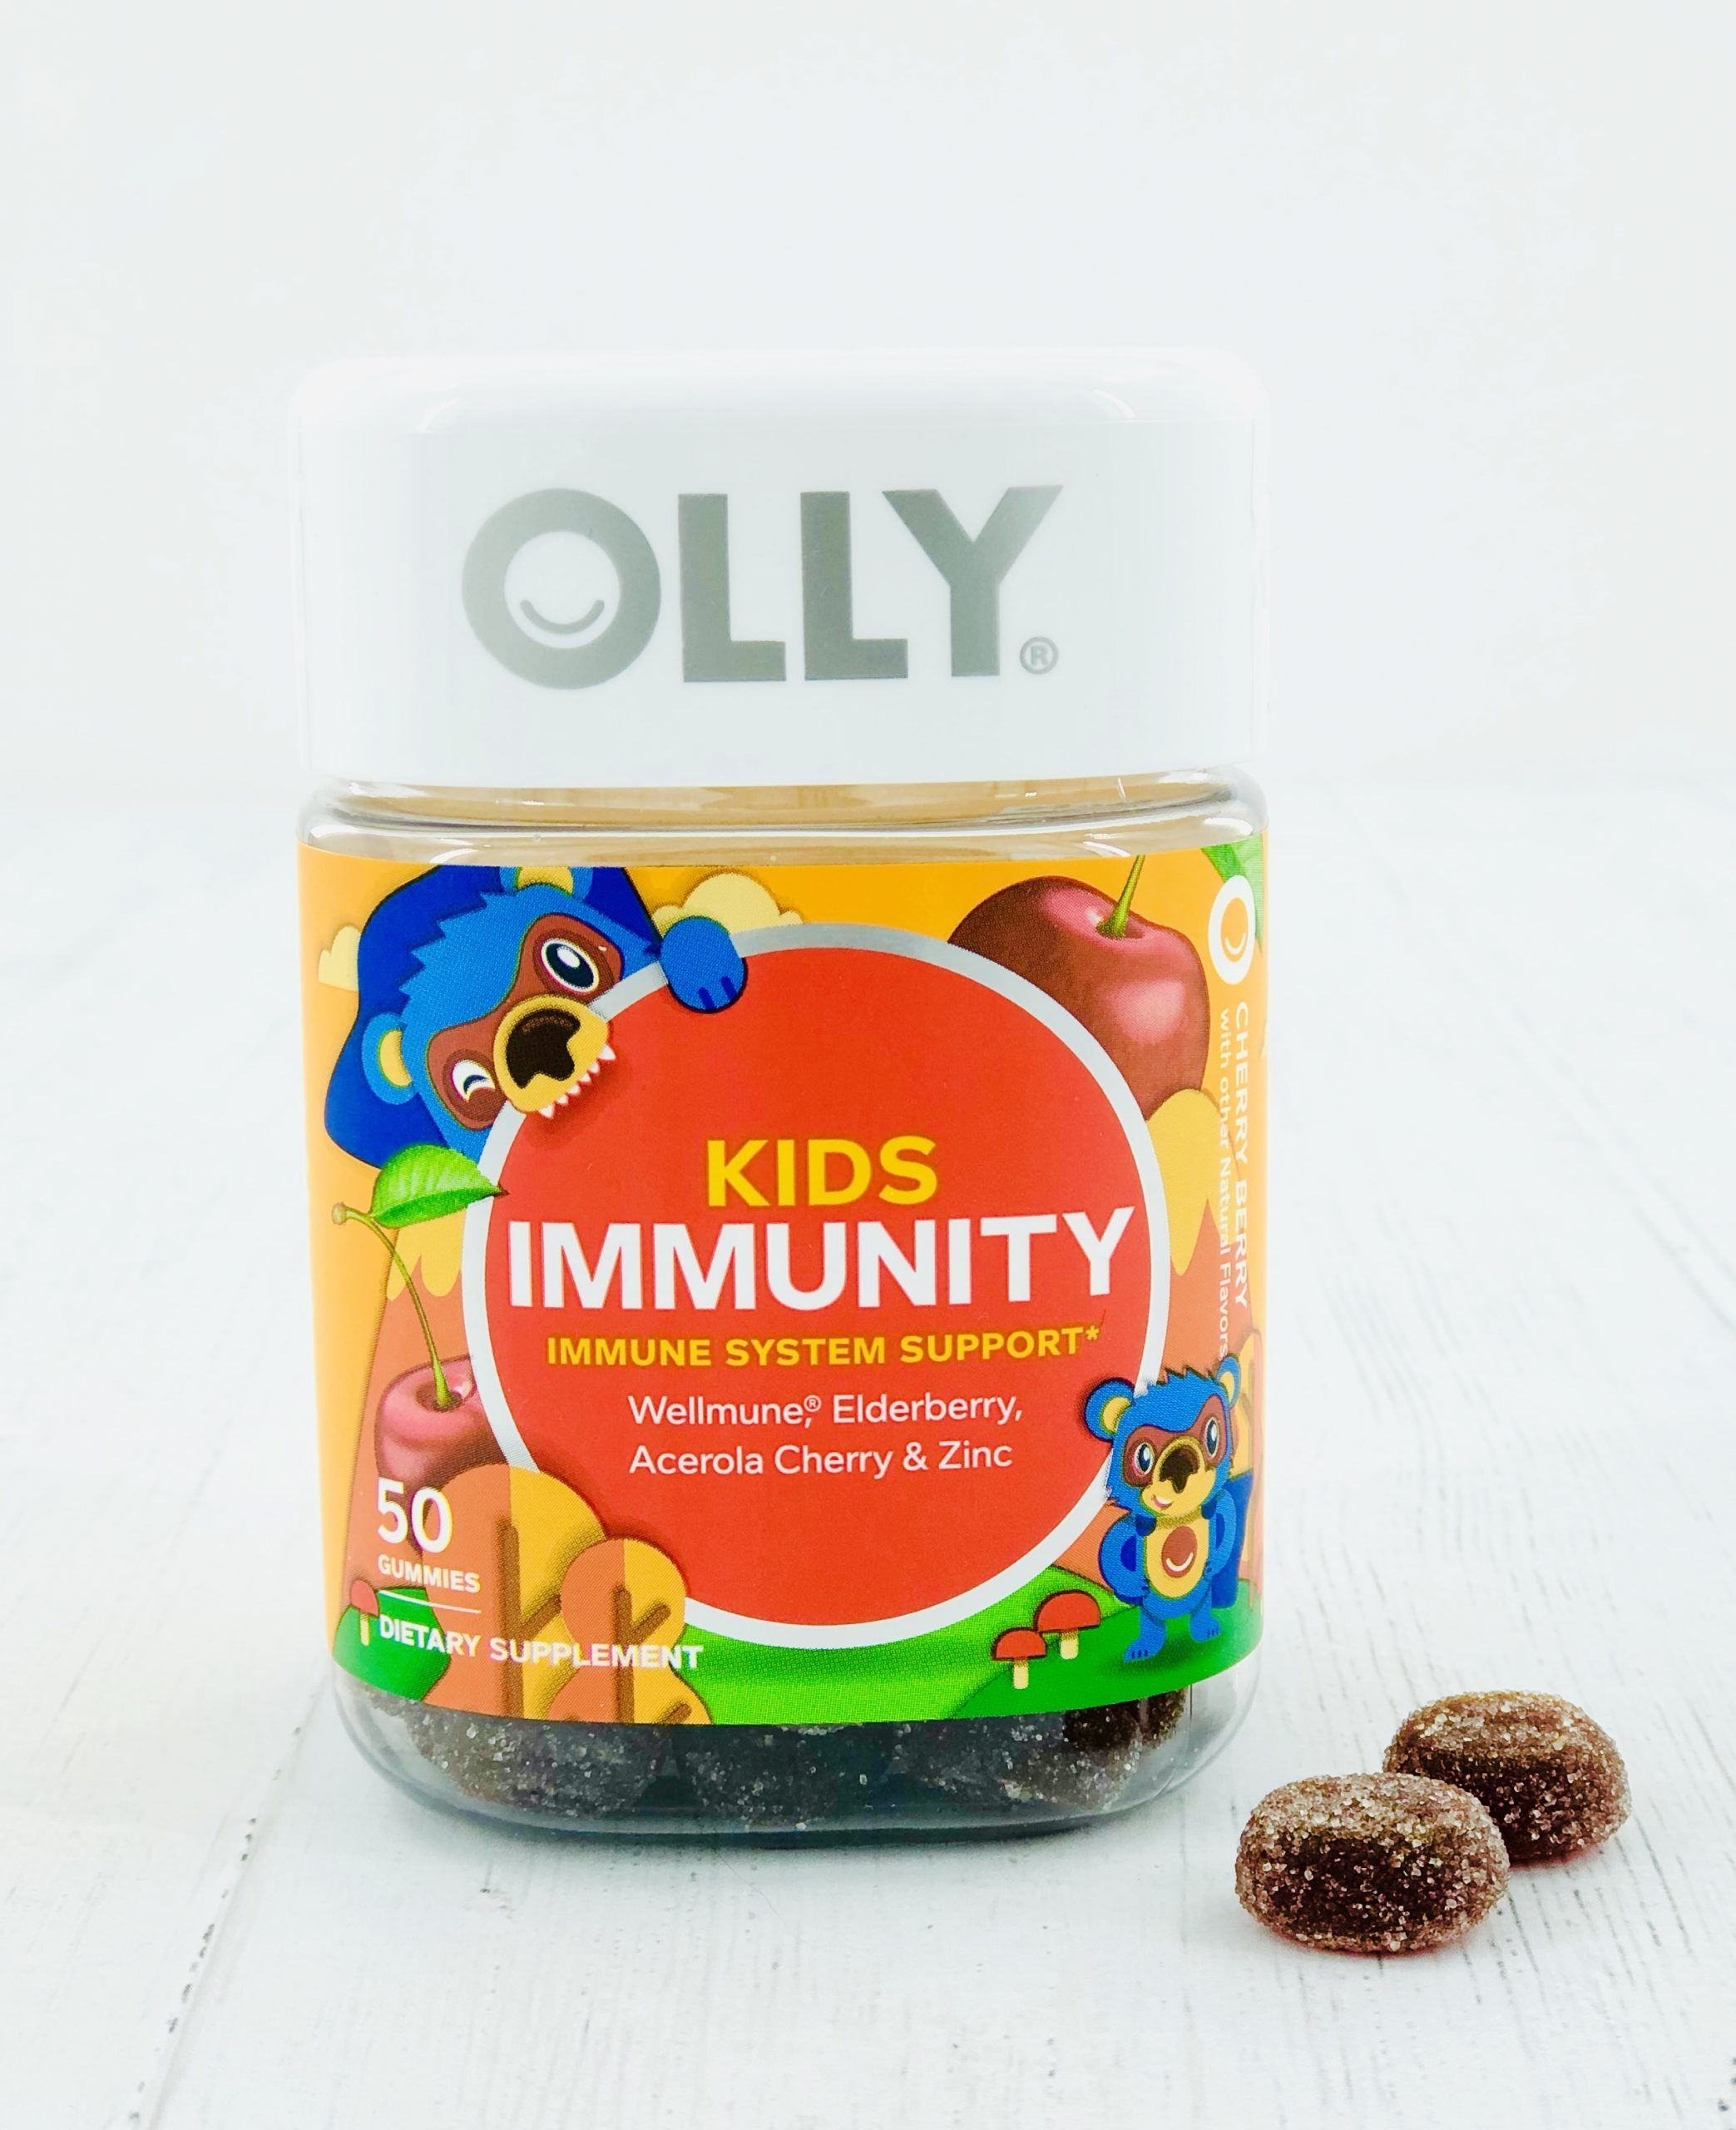 Olly vitamins that contain Wellmune.